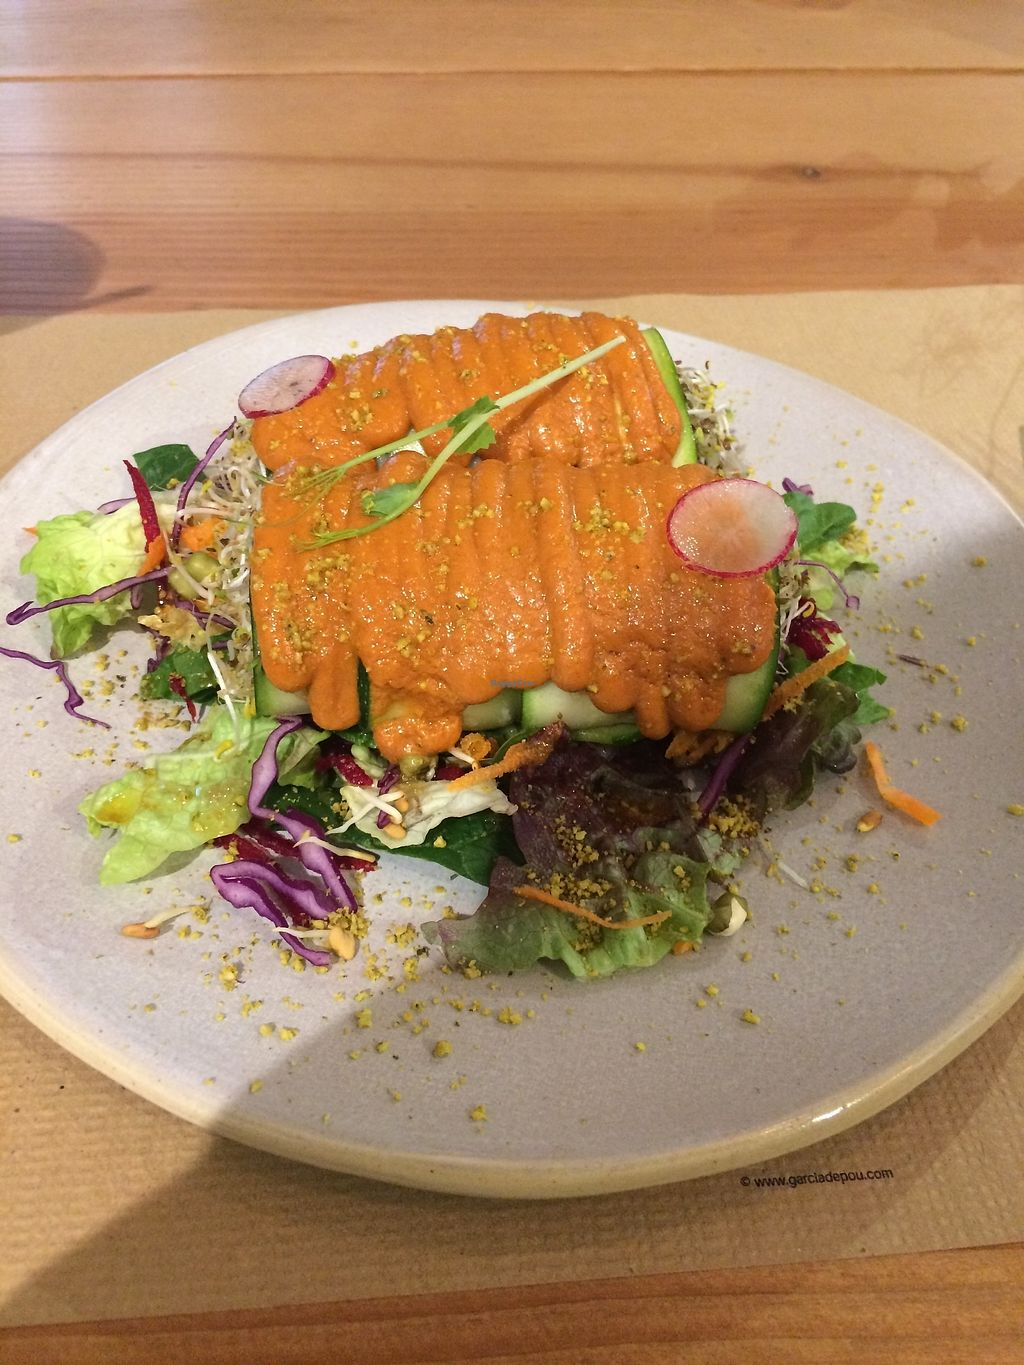 """Photo of Petit Brot - Cold Press, Raw, Eco  by <a href=""""/members/profile/sabrinajh"""">sabrinajh</a> <br/>Raw vegan cannelloni. Red pepper coulis on top and stuffed with creamy mushroom sauce.  <br/> December 31, 2017  - <a href='/contact/abuse/image/65288/341454'>Report</a>"""